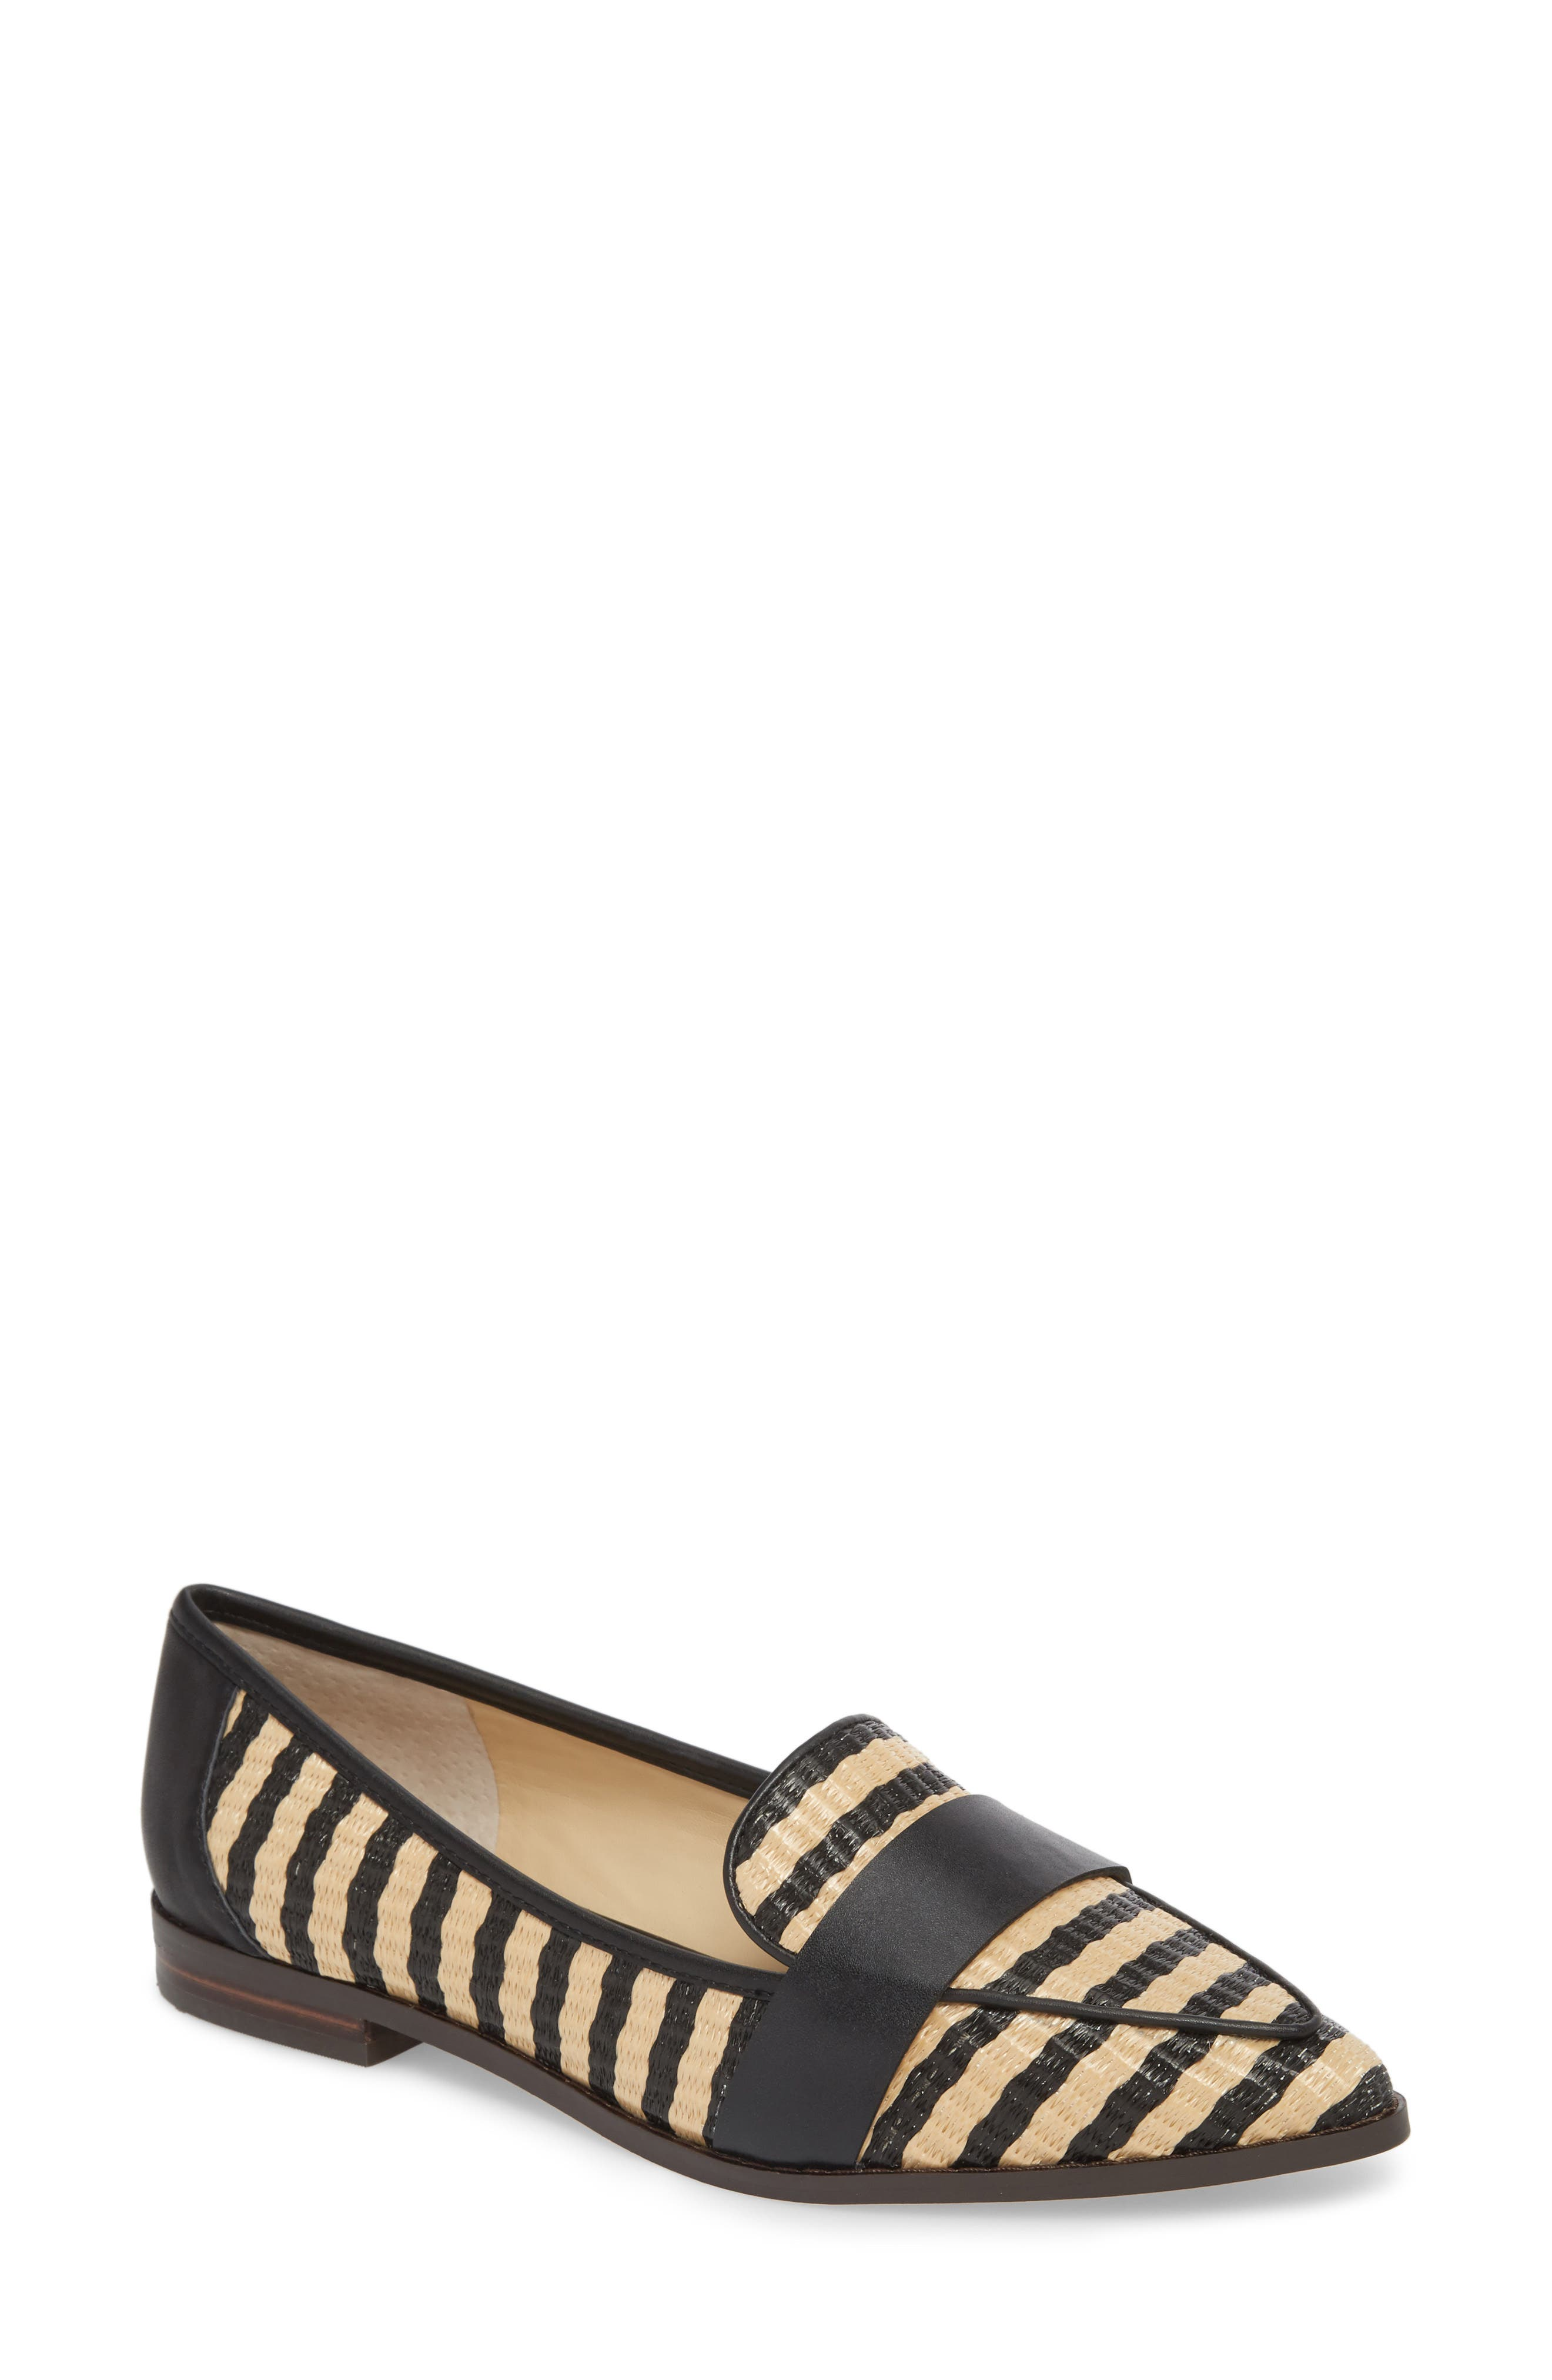 Edie Loafer,                             Main thumbnail 1, color,                             Natural/ Black